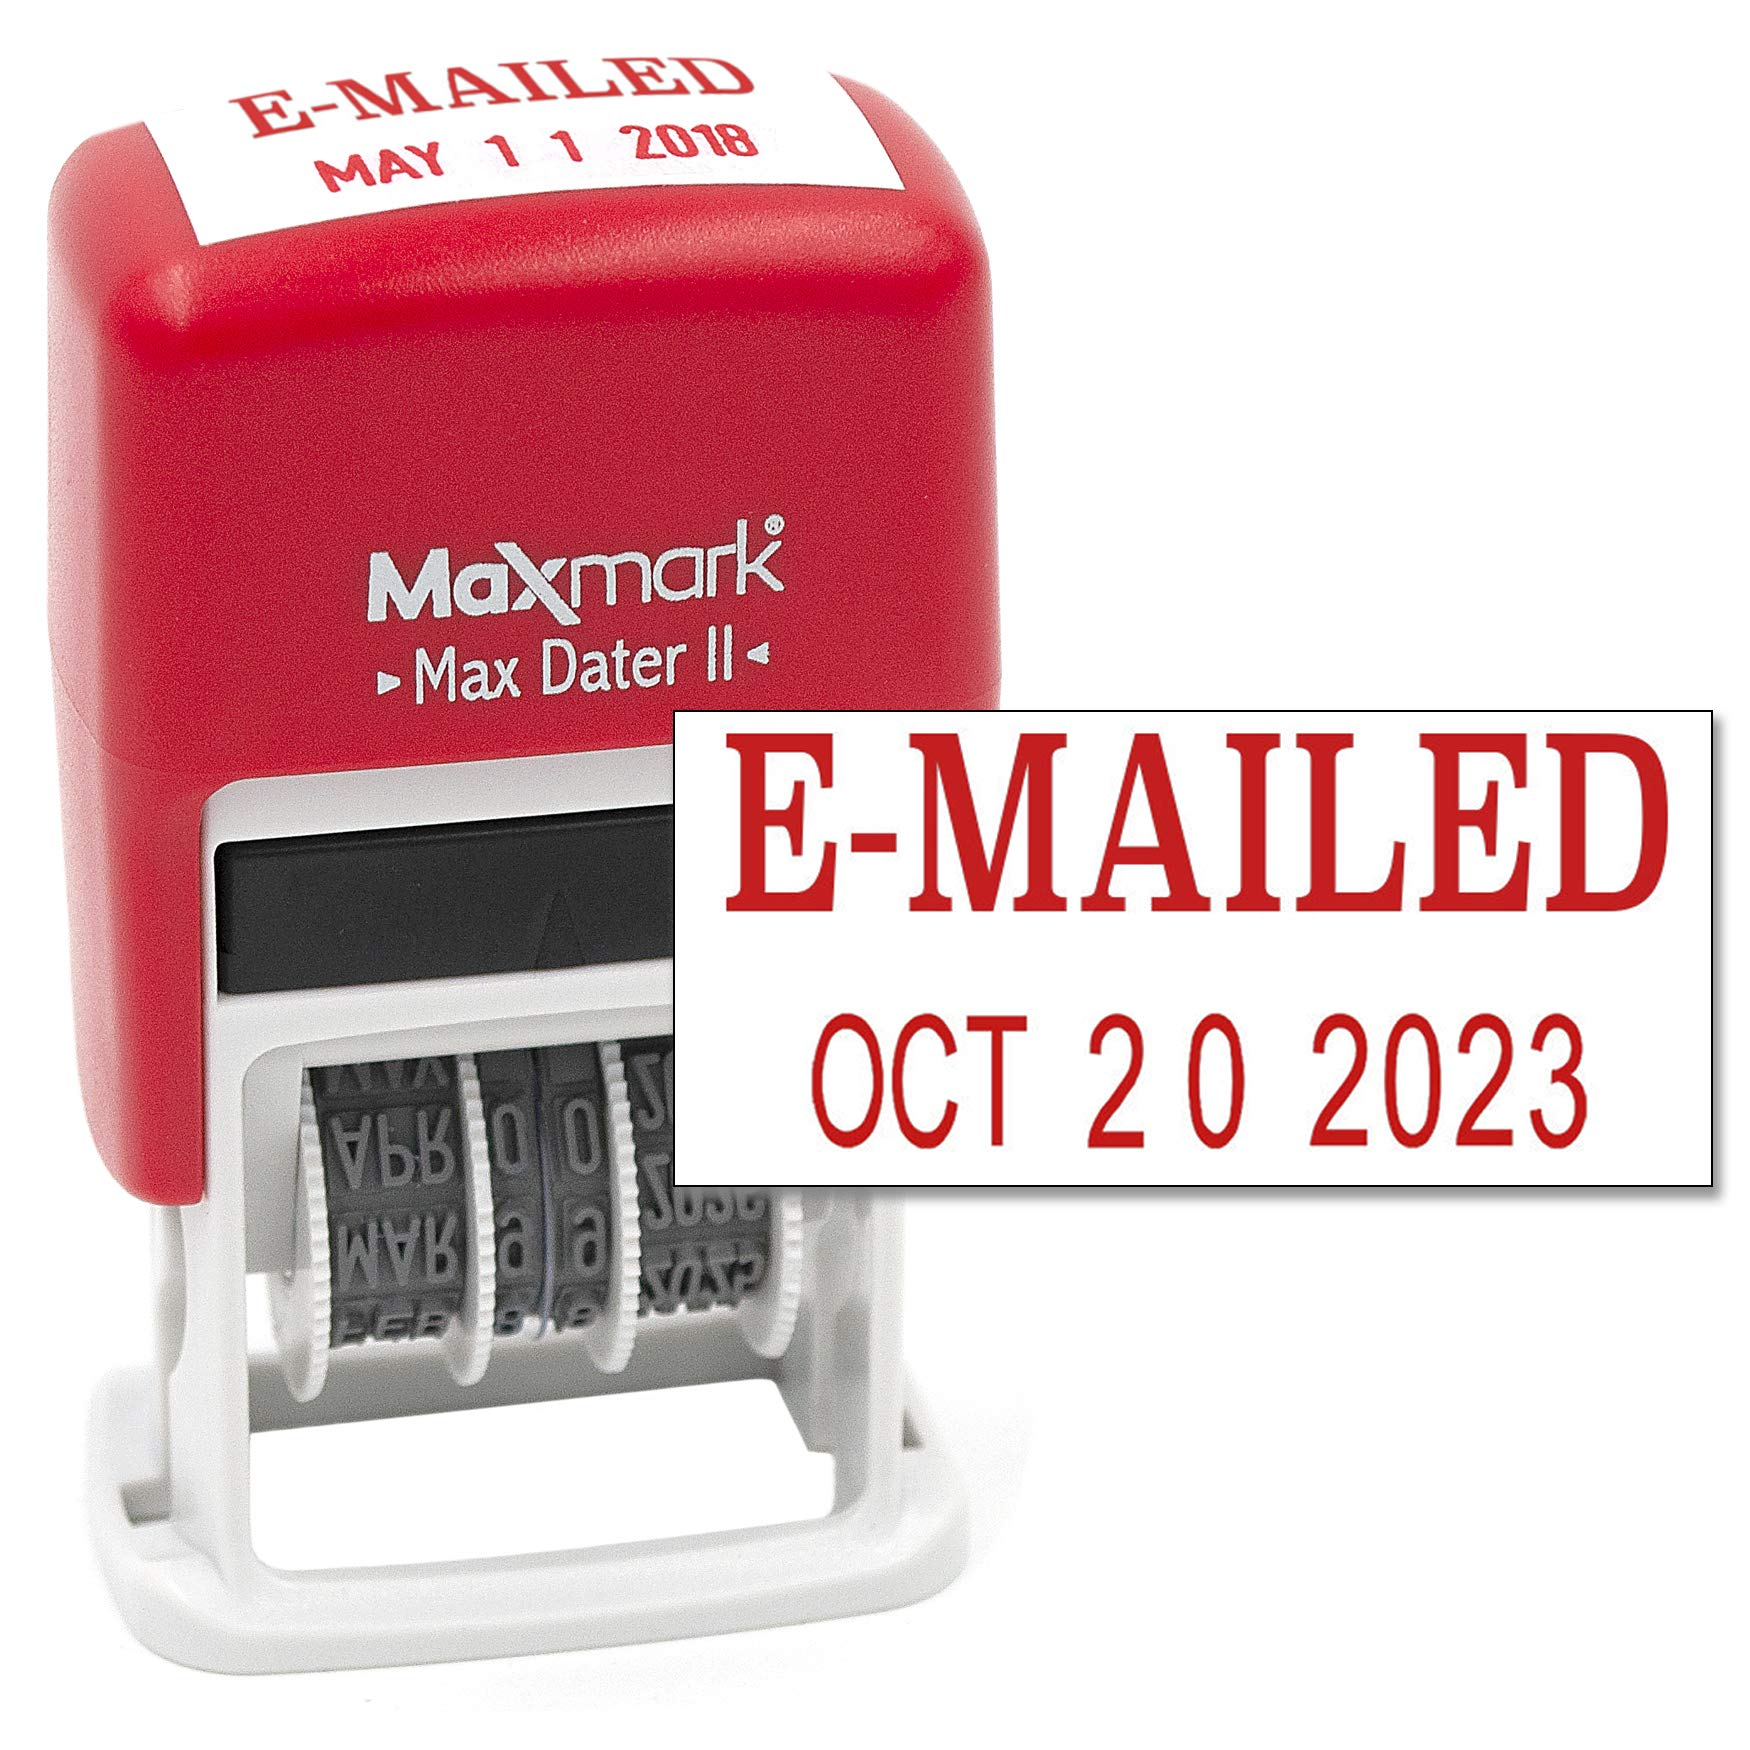 MaxMark Self-Inking Rubber Date Office Stamp with E-MAILED Phrase & Date - RED INK (Max Dater II), 12-Year Band